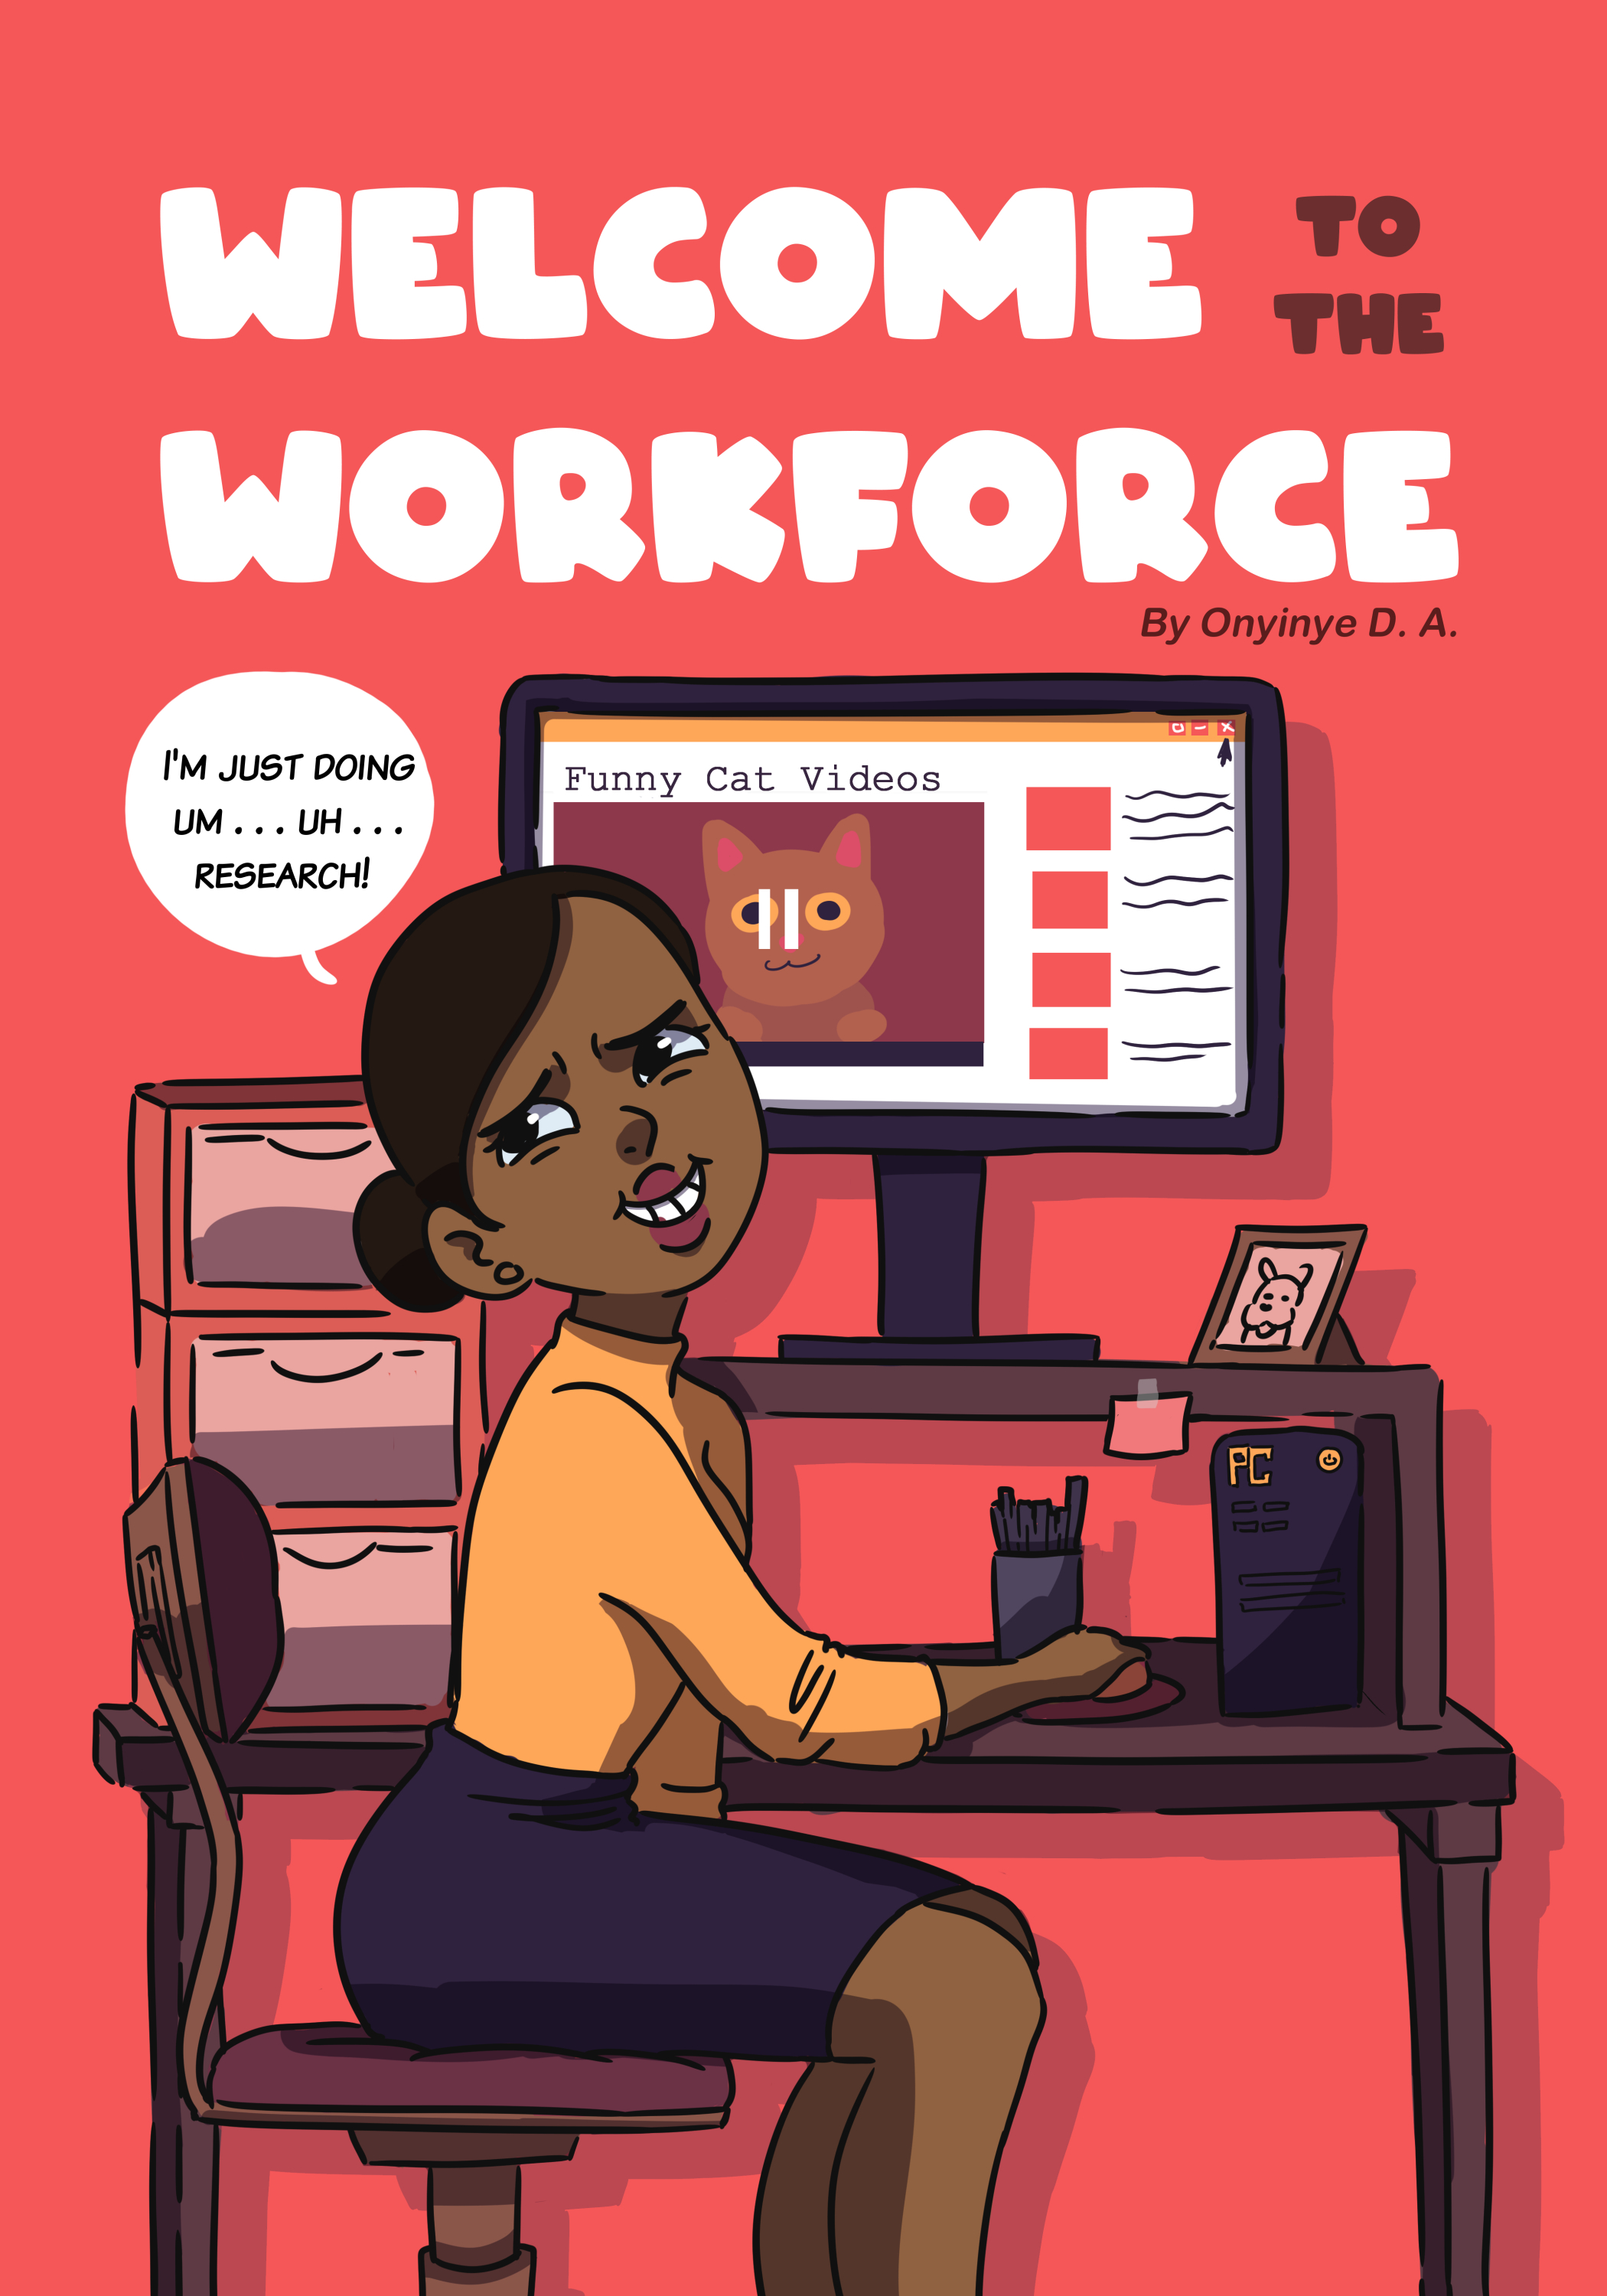 Welcome to the Workforce (2019) Genre: Comedy, Slice of Life Role: Creator